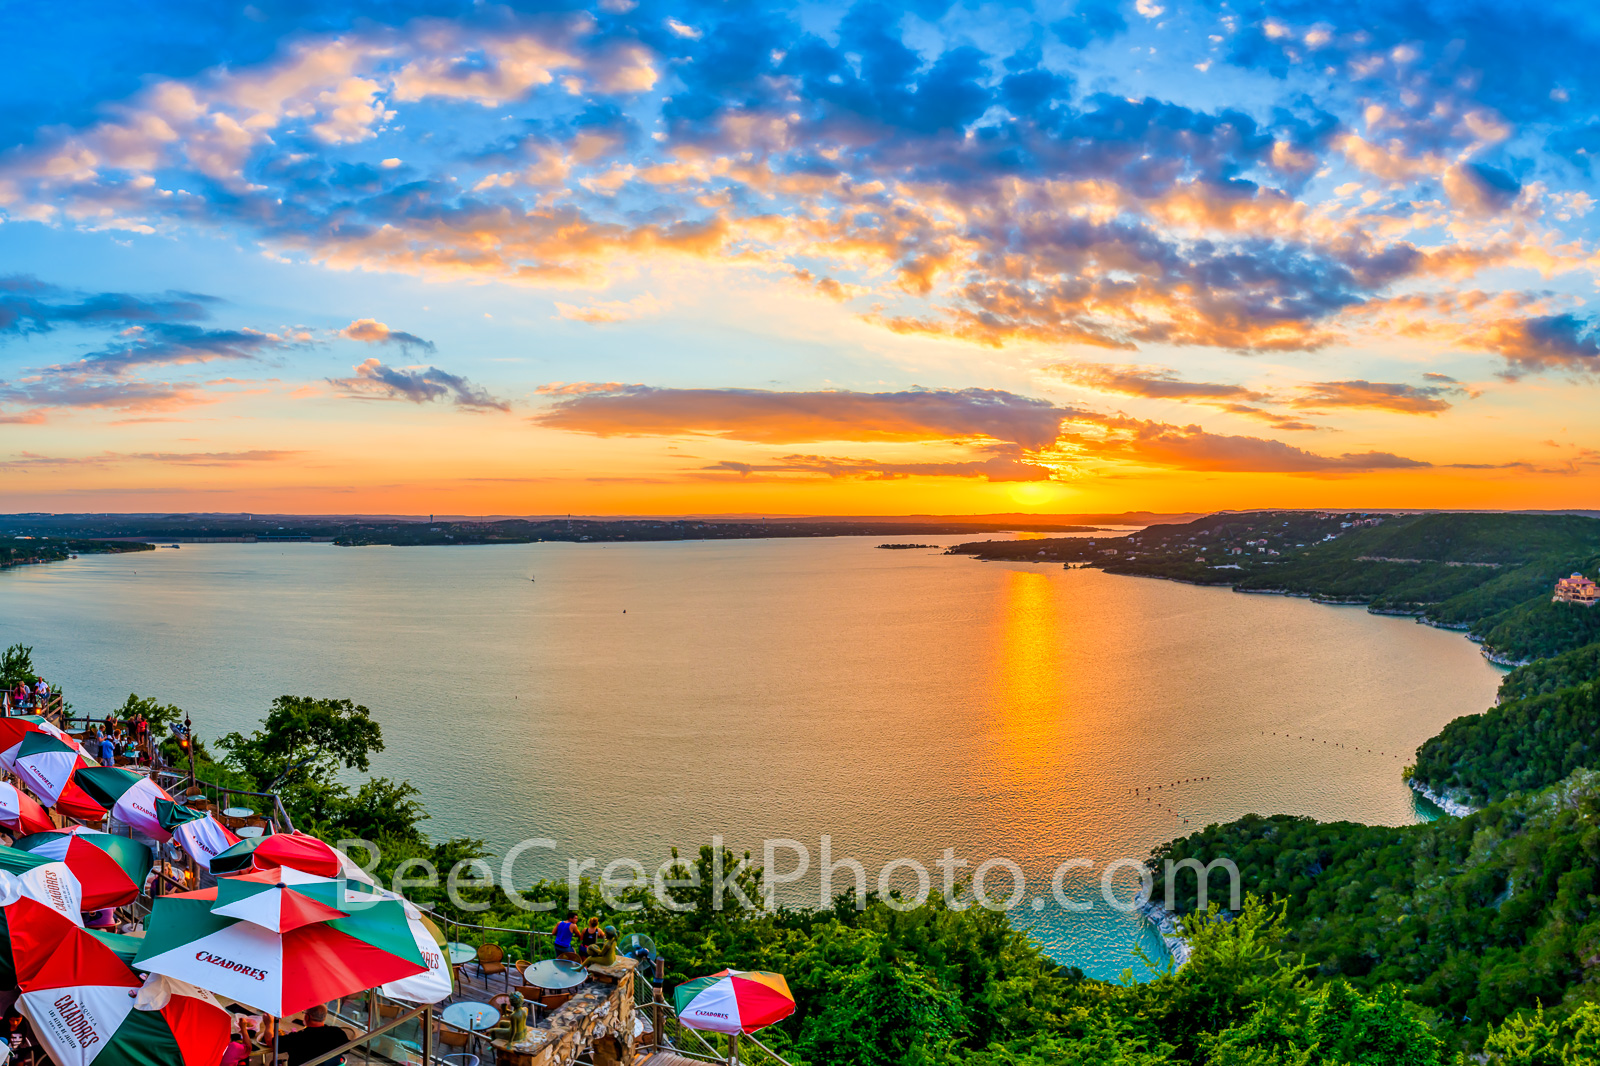 Austin Oasis Sunset - One more image of this wonderful sunset at the Oasis on Lake Travis. Lake Travis is outside of Austin,Texas...